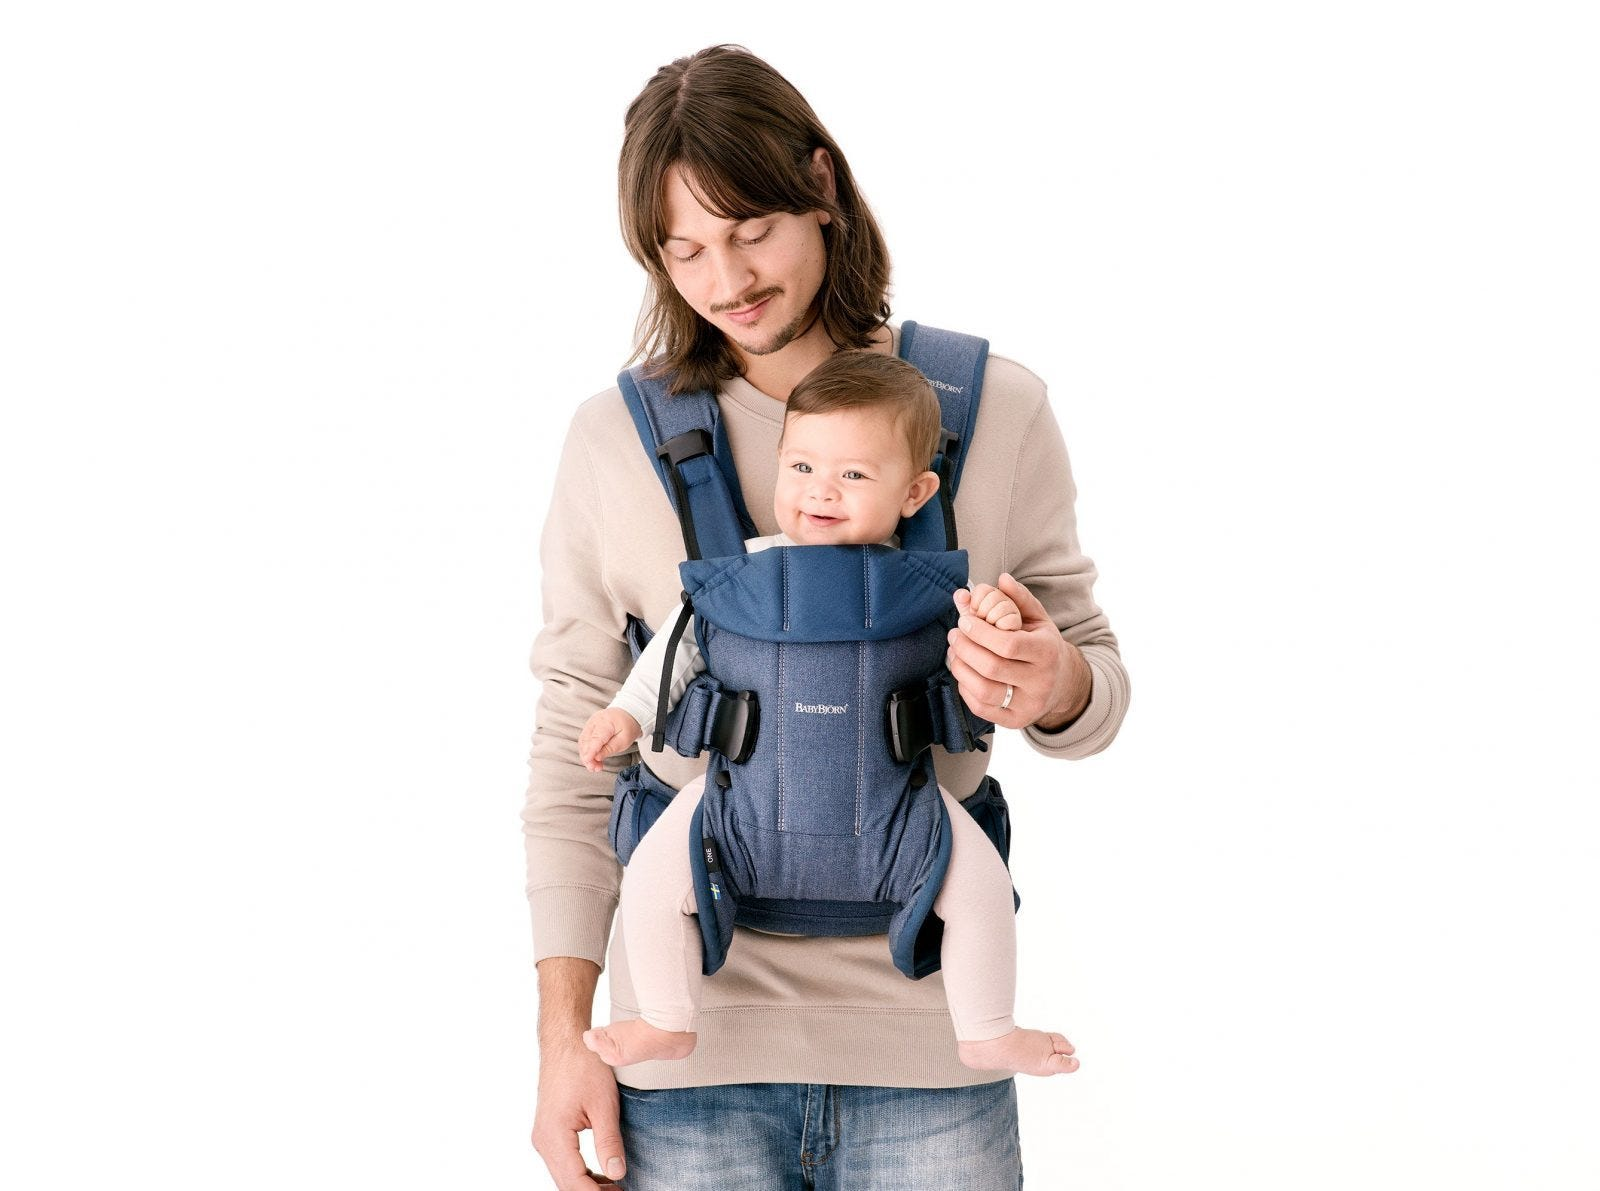 A man carrying a newborn in front in a BabyBjörn carrier.